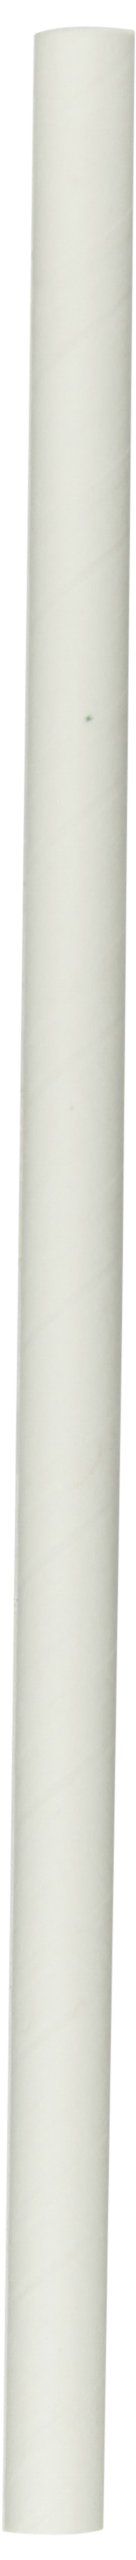 Aardvark 61500210 Unwrapped Paper Giant Drinking Straw, 9/32'' Diameter x 7-3/4'' Length, White (8 Boxes of 350)